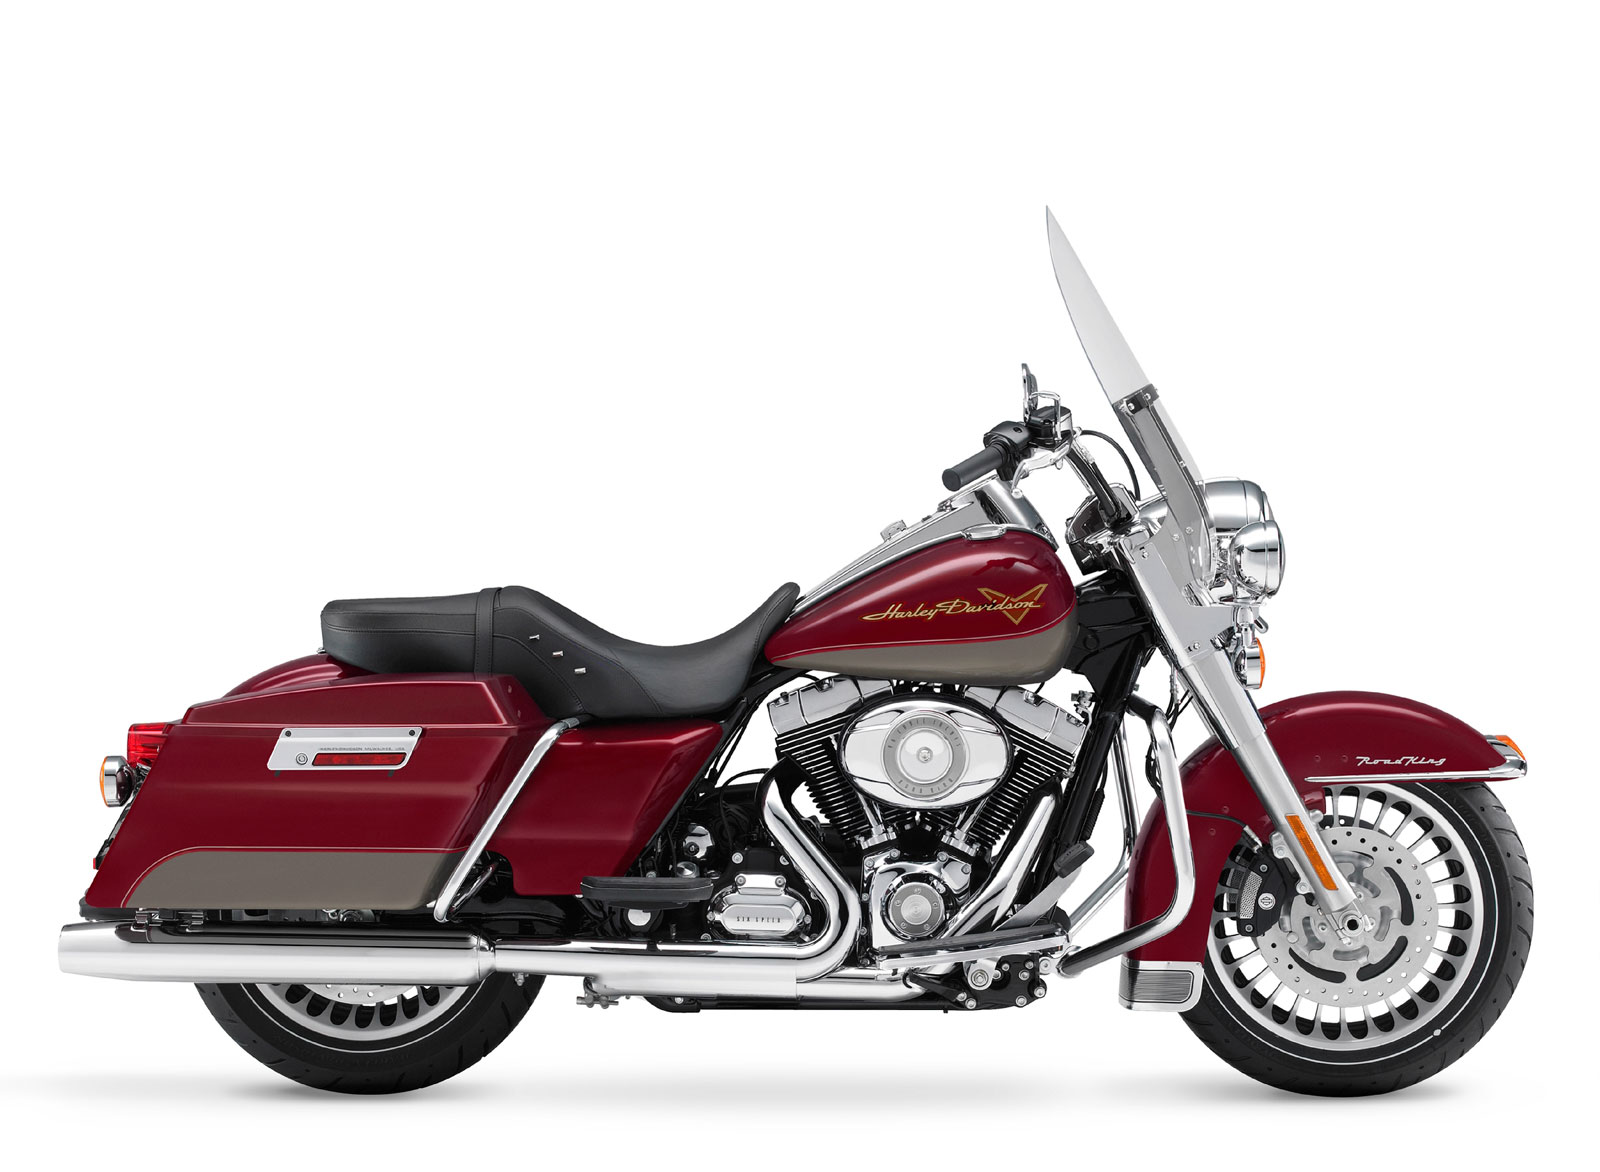 2009 Harley-Davidson FLHR Road King Picture